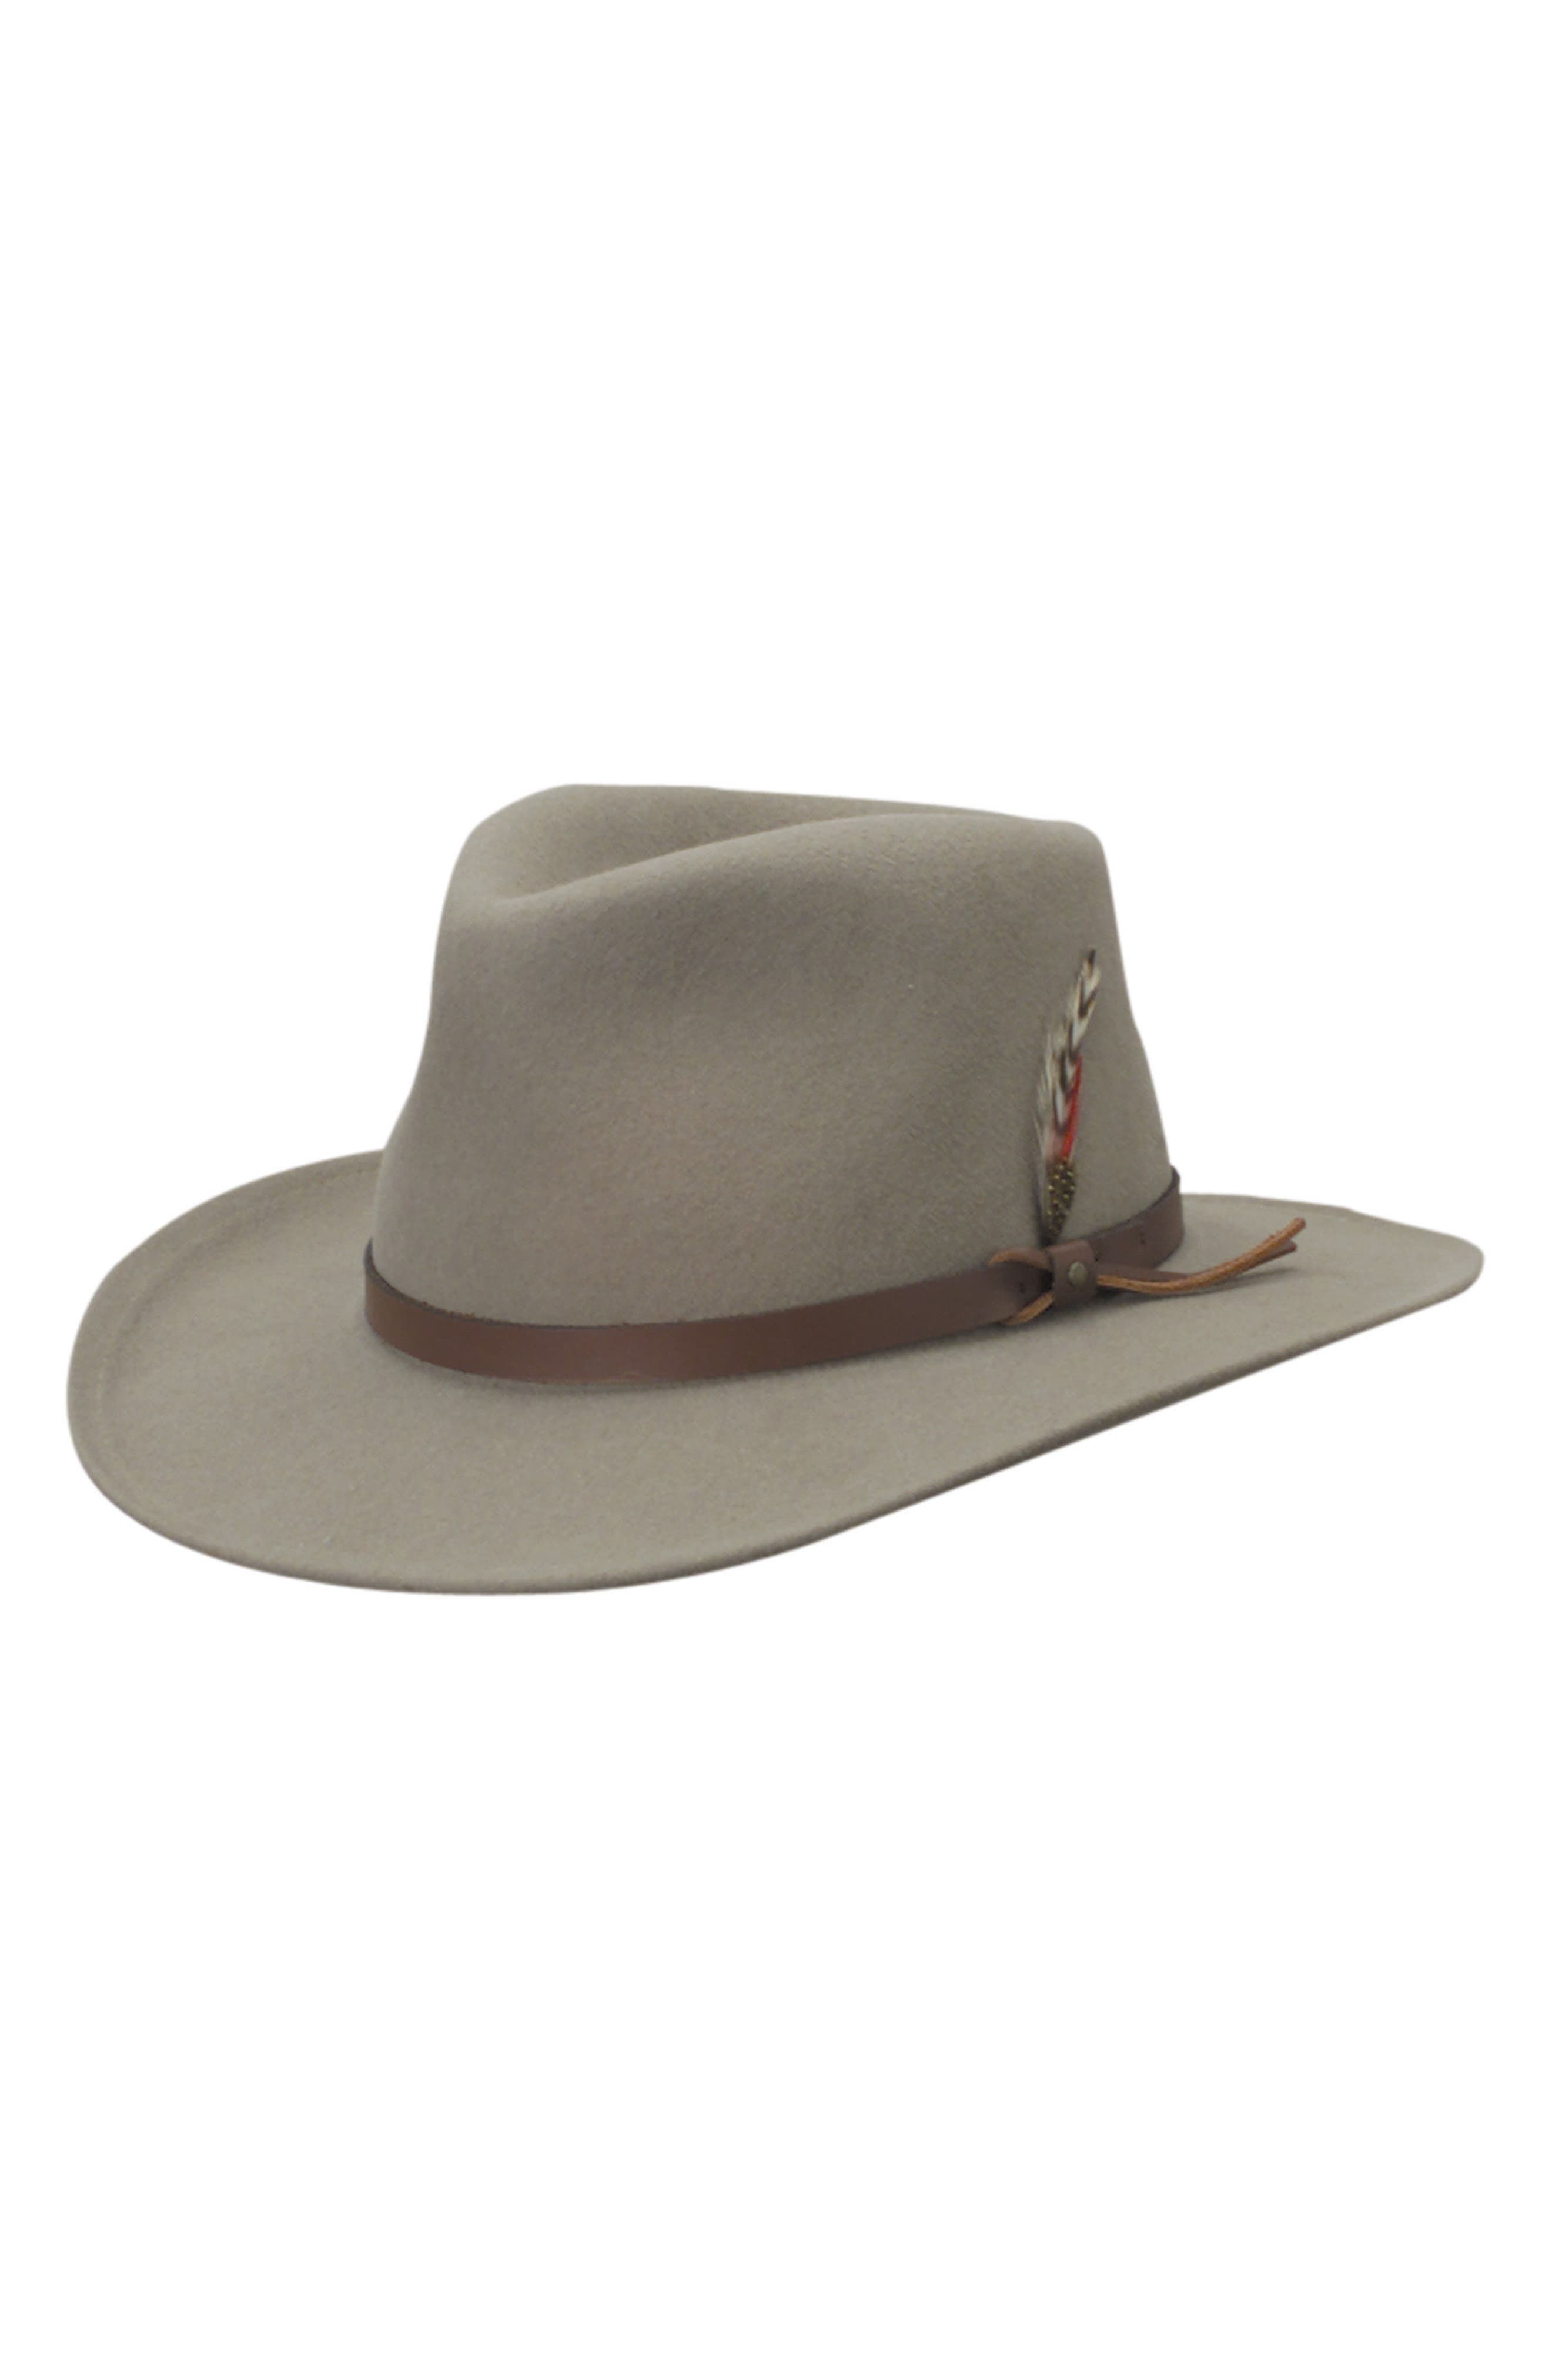 'Classico' Crushable Felt Outback Hat,                             Alternate thumbnail 2, color,                             PUTTY GREY/ BROWN